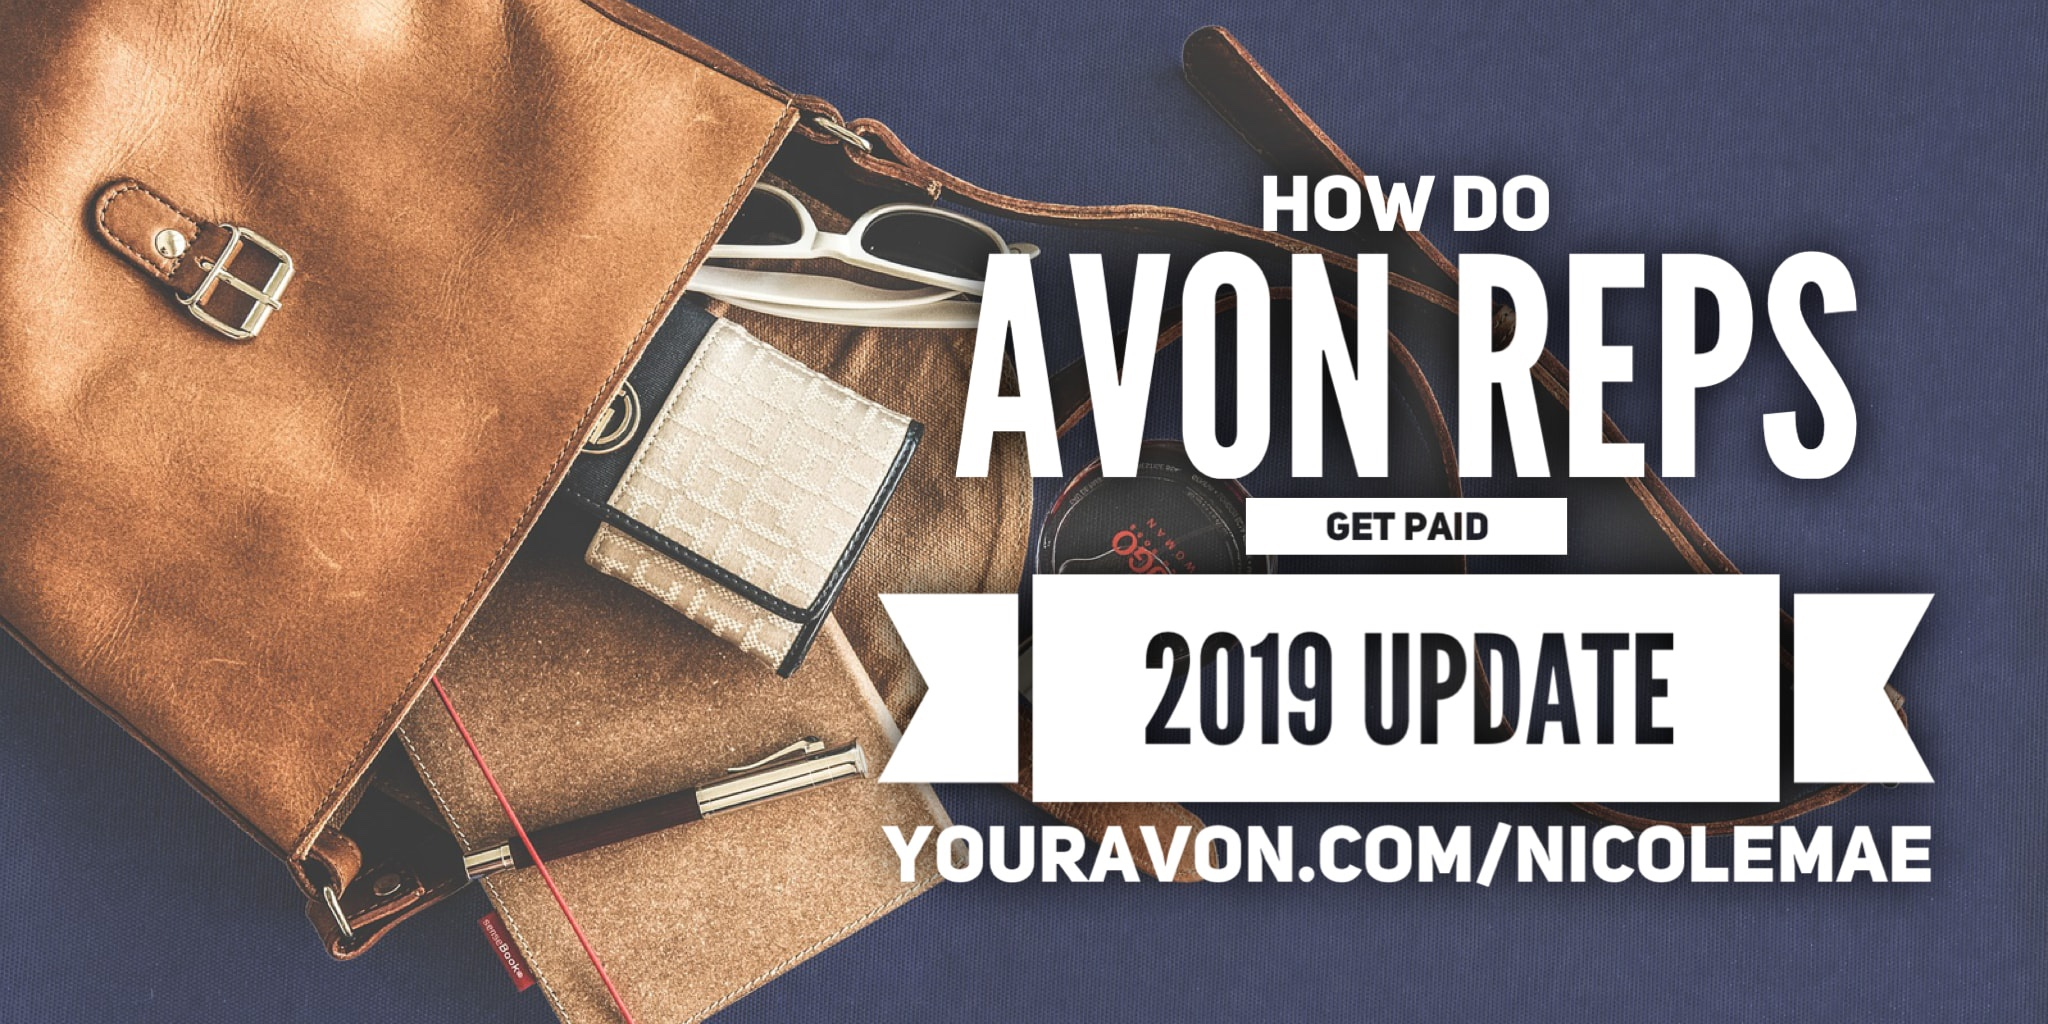 HOW DO AVON REPS GET PAID IN 9 WAYS 2019 UPDATE